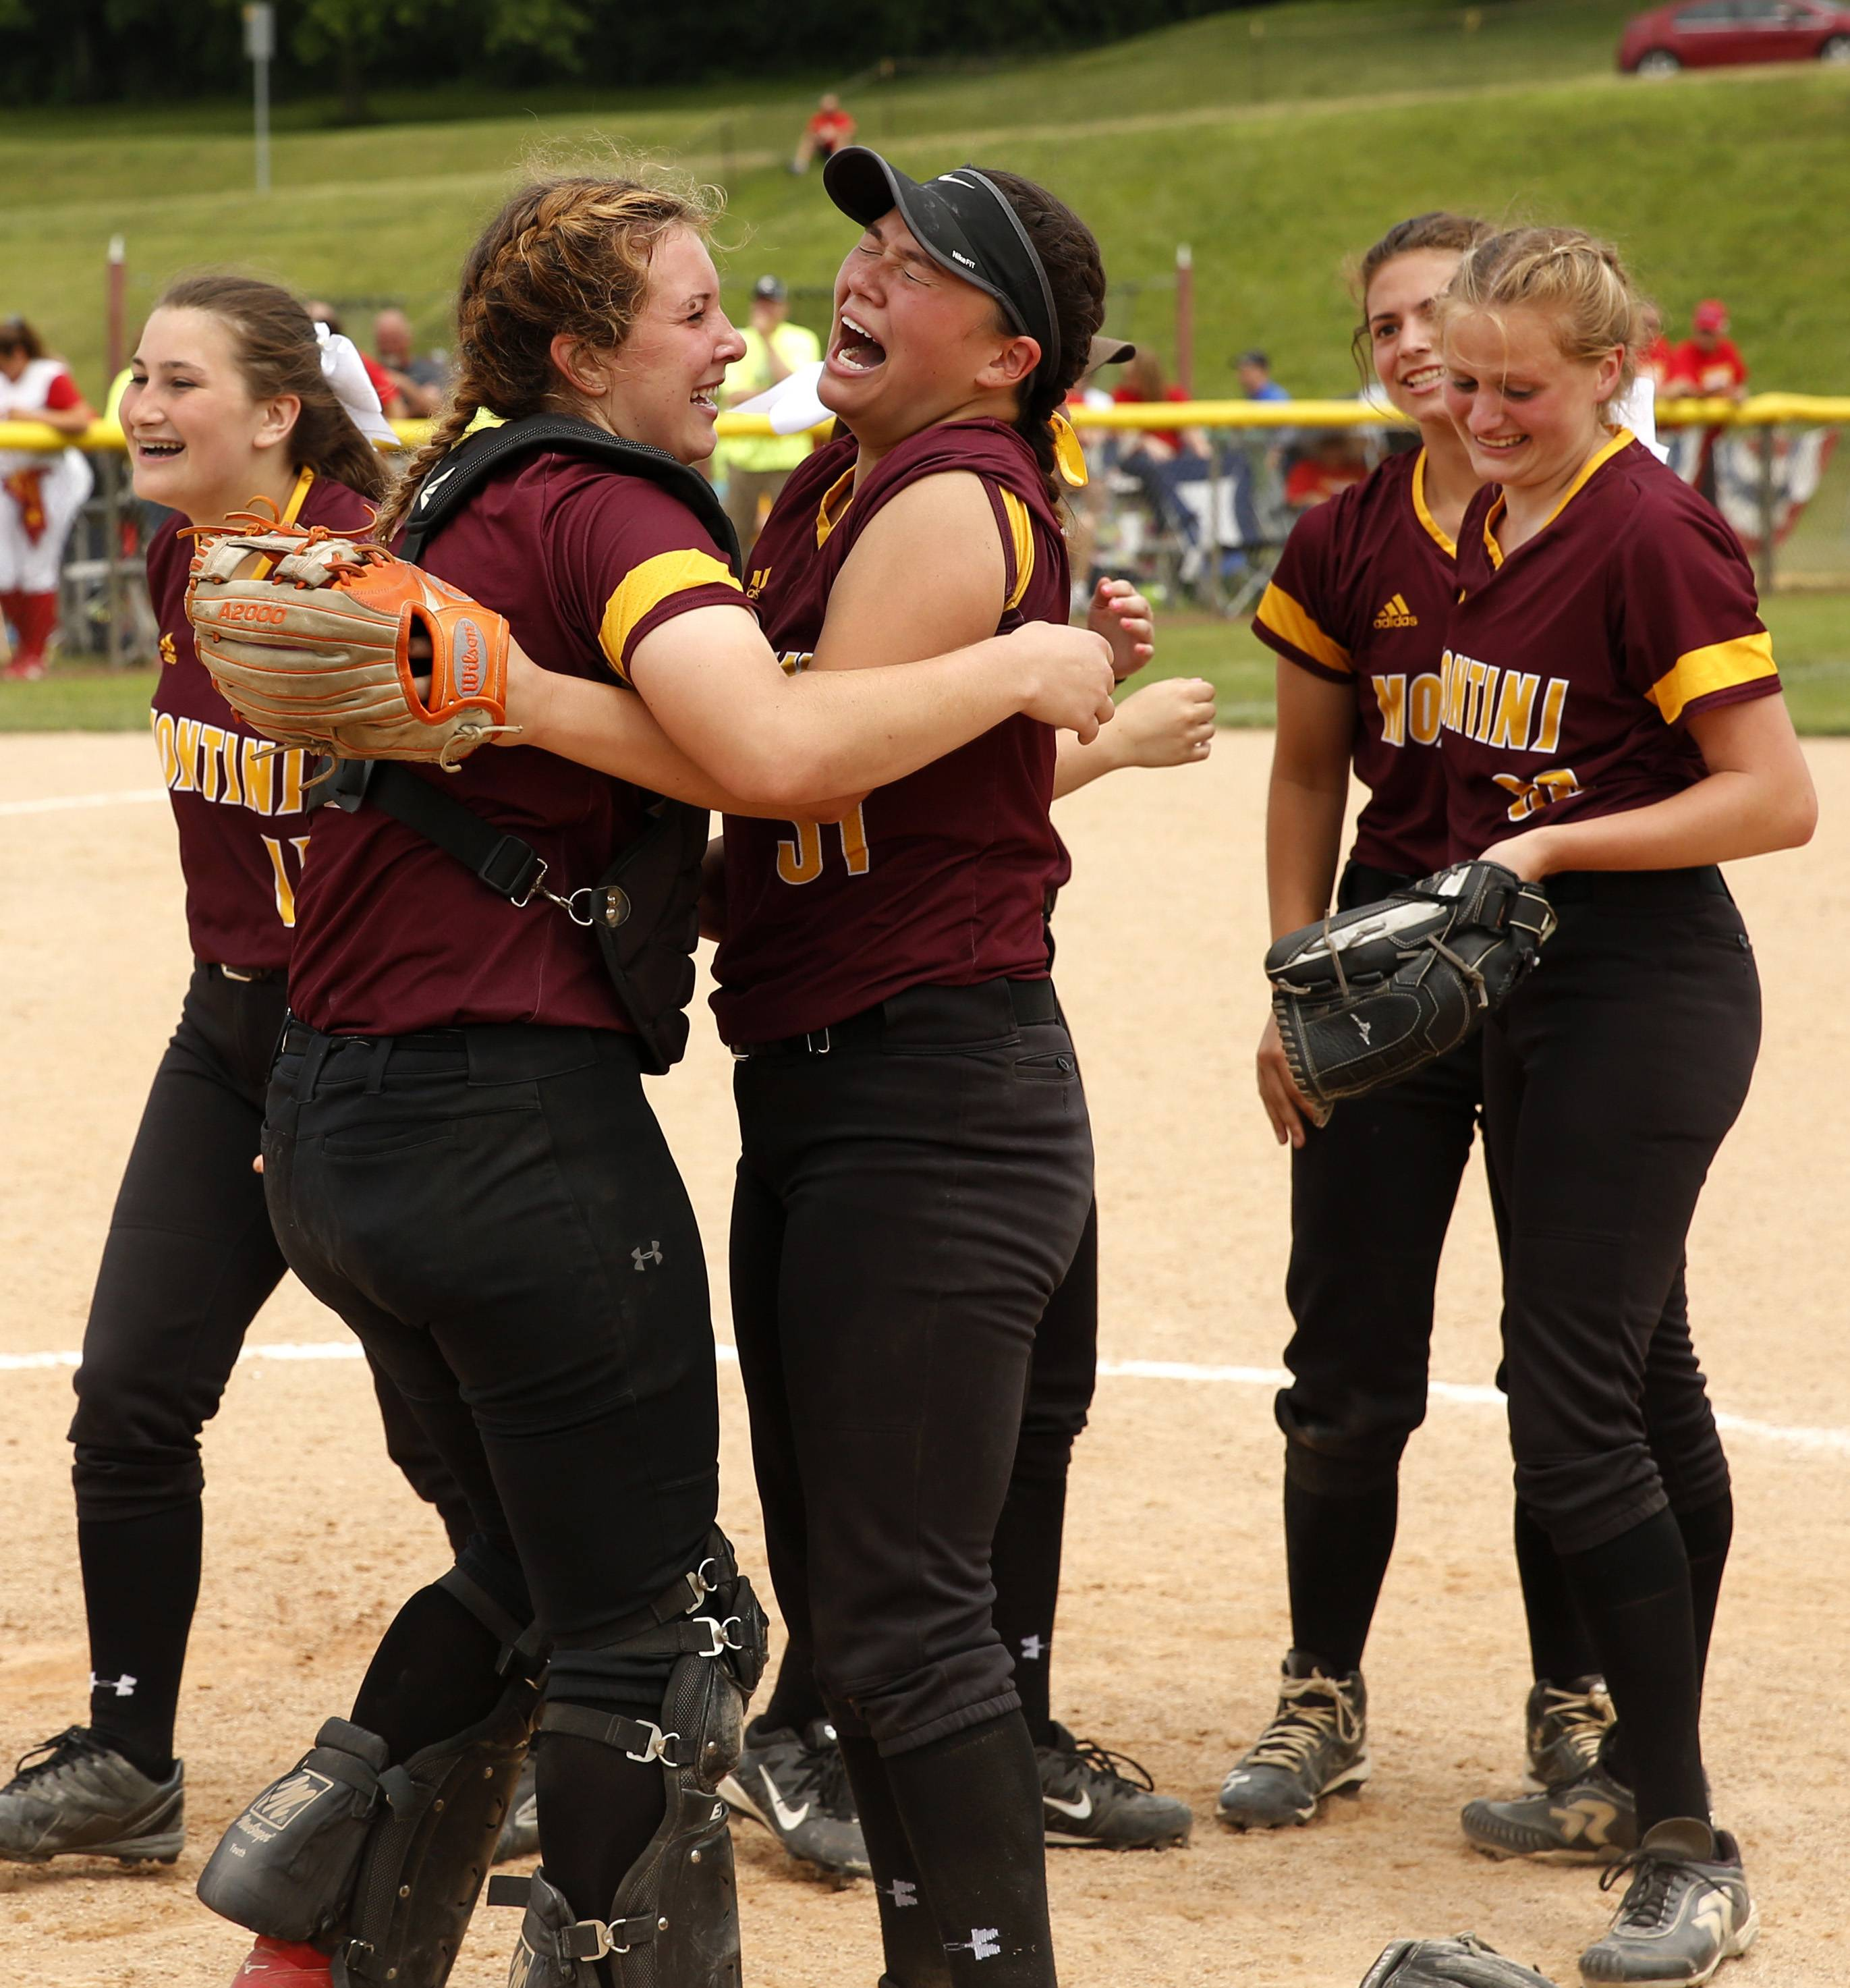 Montini Catholic players celebrate their epic 15-8 seventh inning comeback against Kaneland to win the IHSA Class 3A state softball championship.